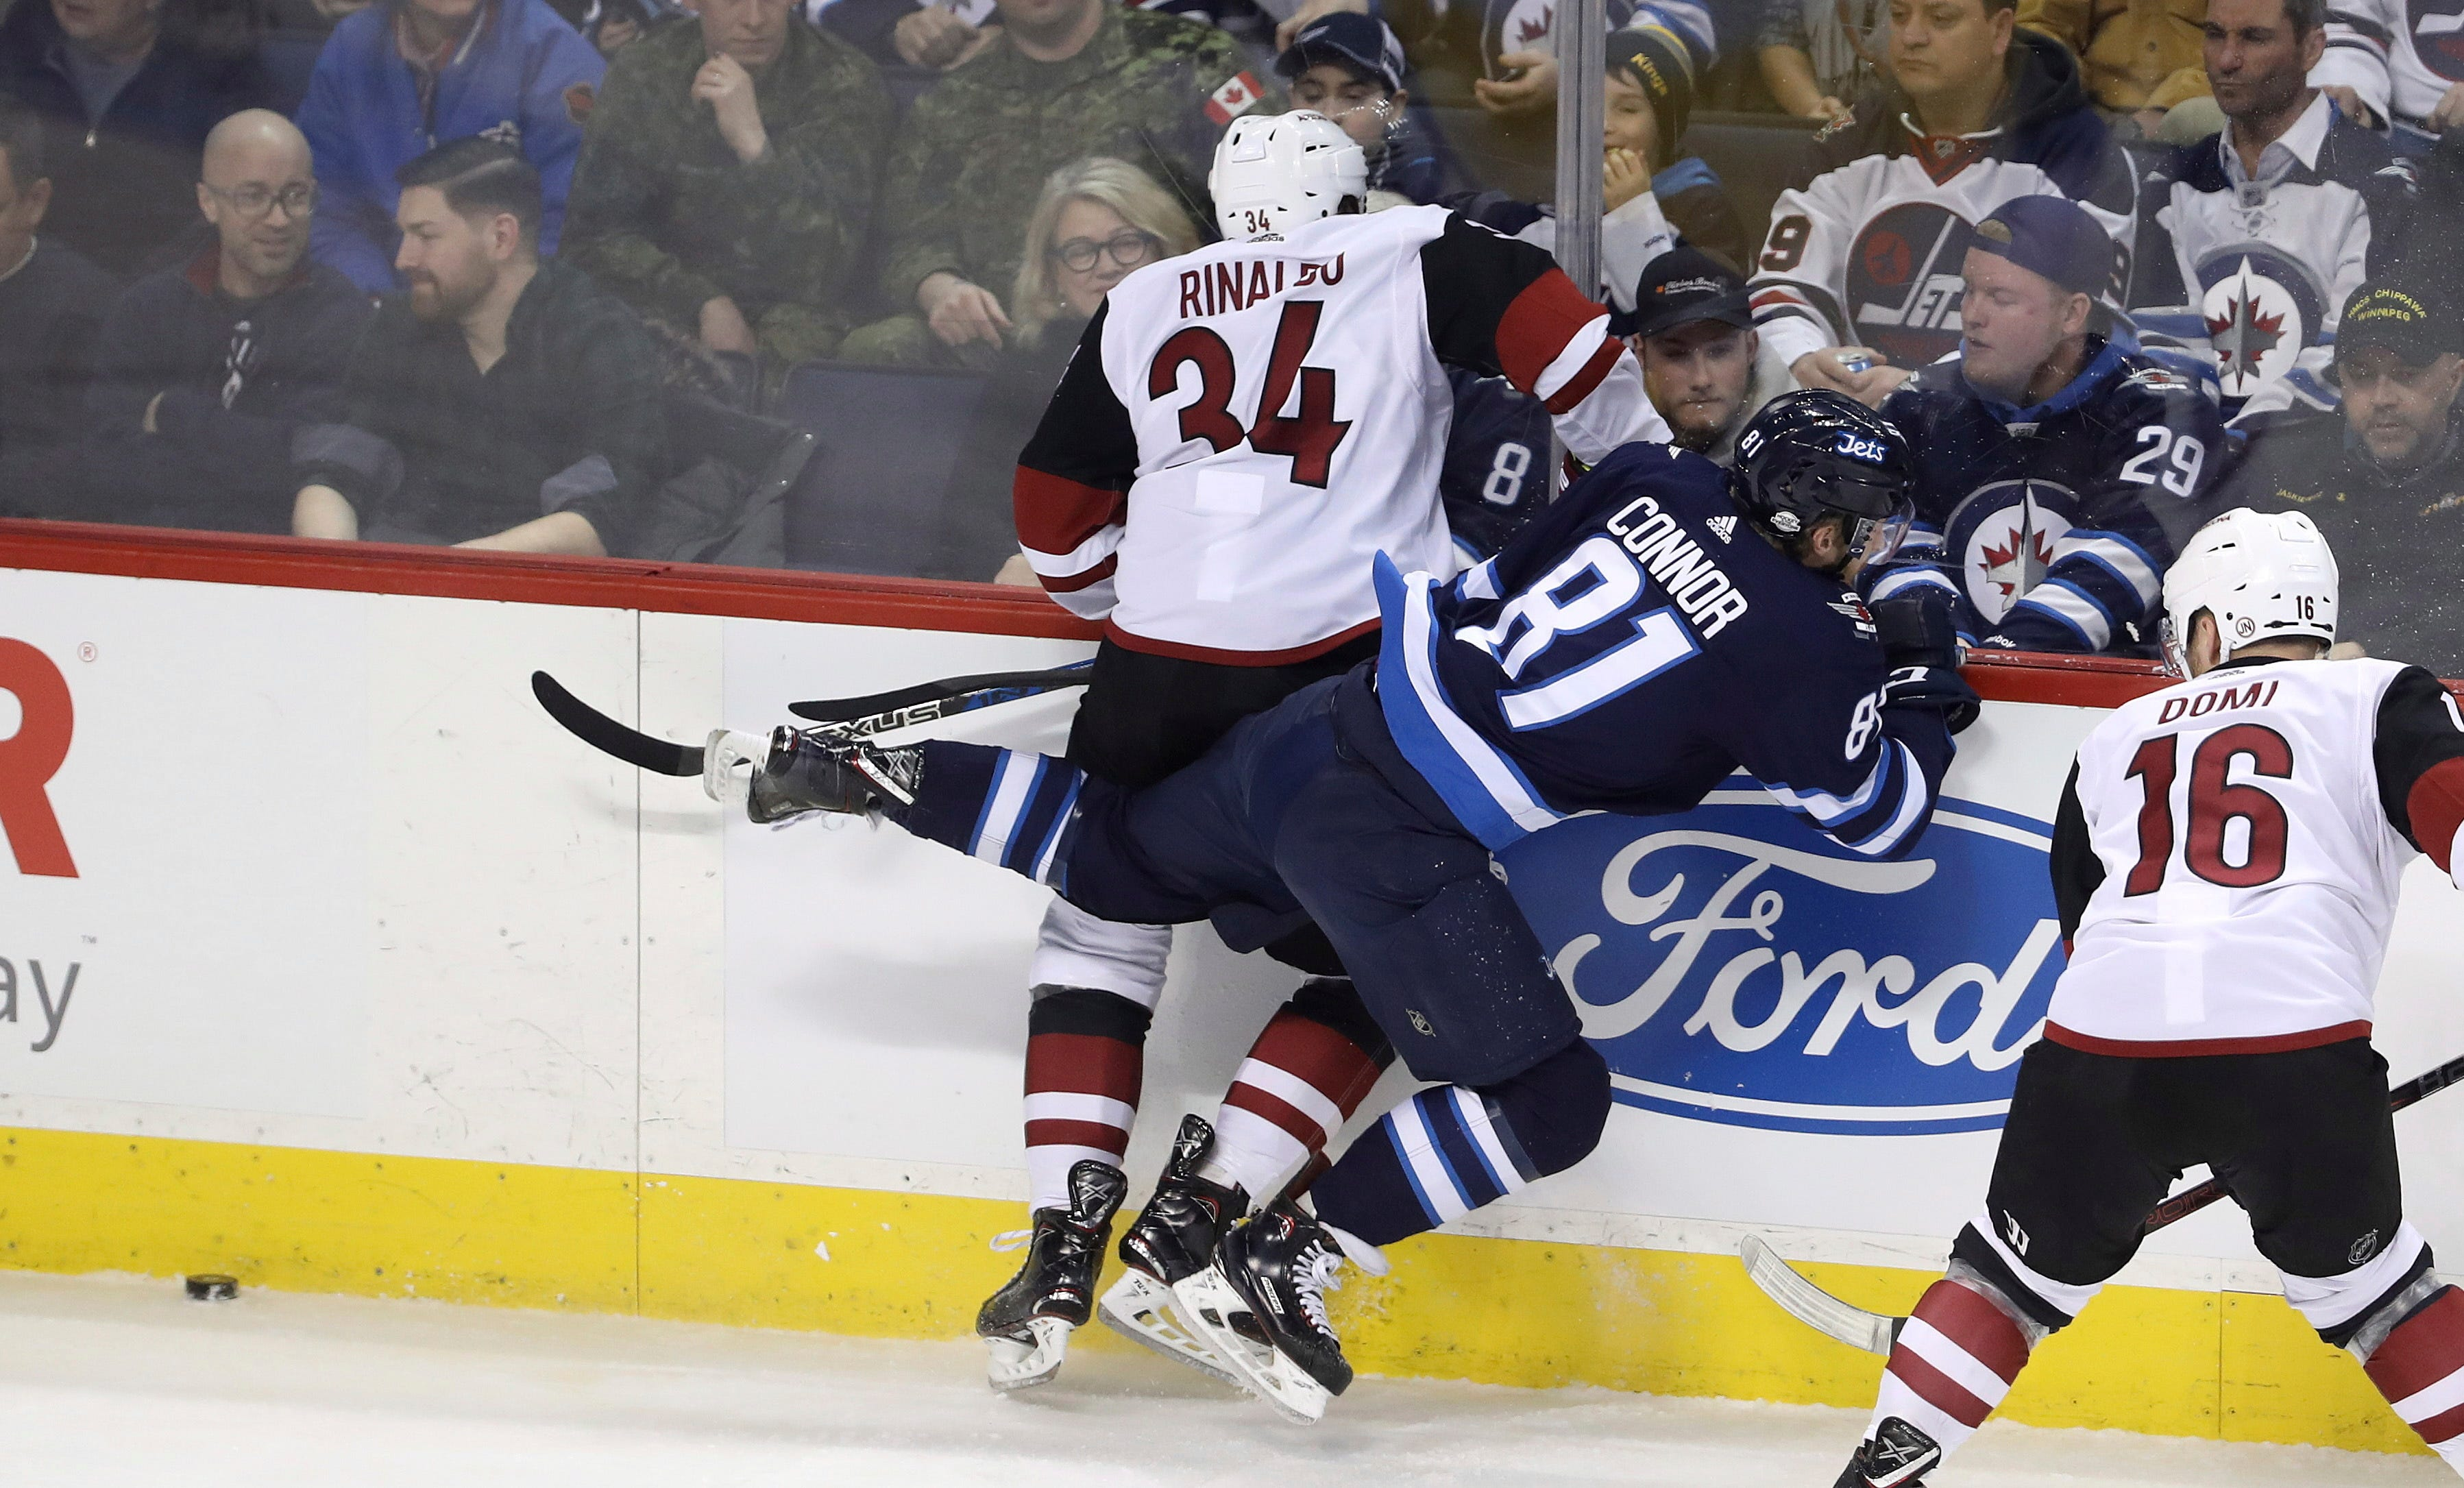 Byfuglien's goal and assist lead Jets past Coyotes 4-3